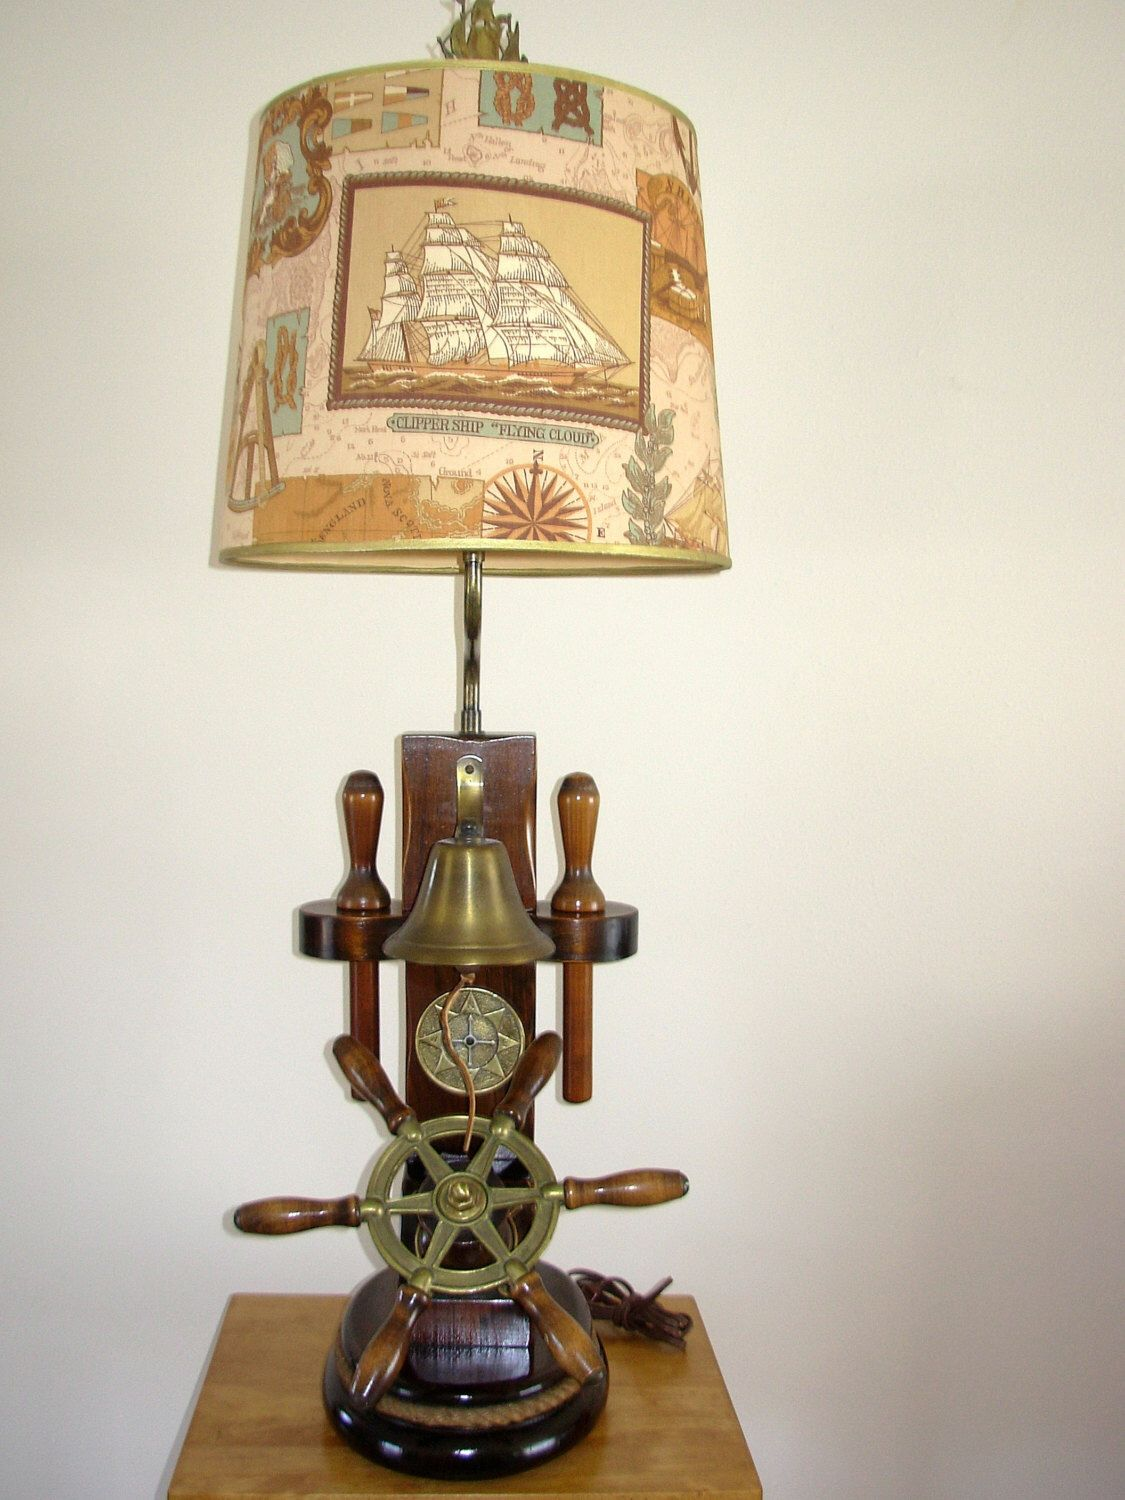 Vintage Nautical Lamp Ship's Wheel, Compass, Bell, & Belaying Pins